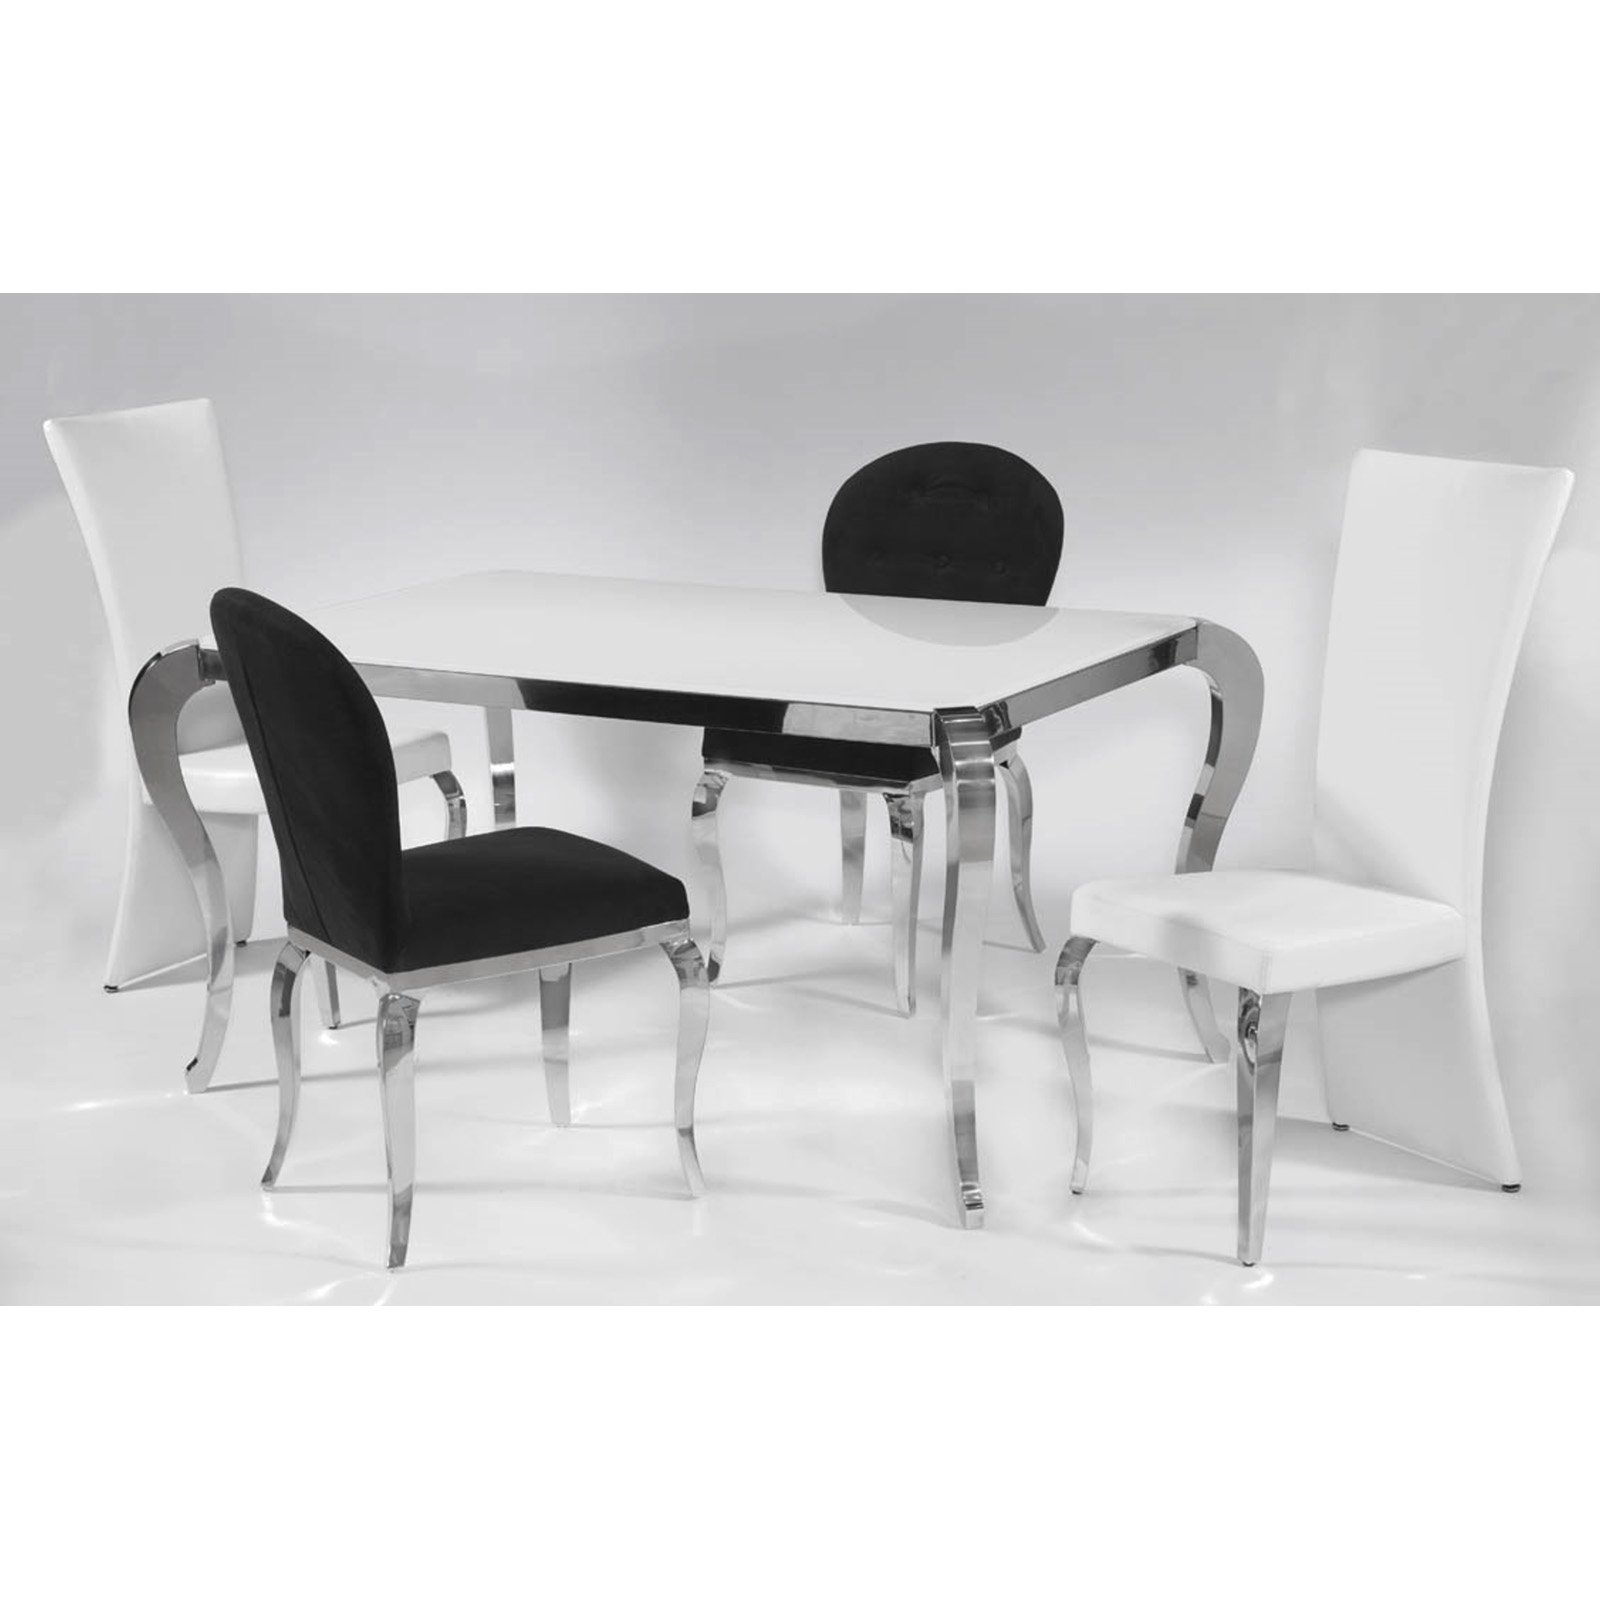 Chrome Dining Room Chairs Regarding Well Known Chintaly Teresa 5 Piece Dining Table Set – Walmart (Gallery 6 of 25)